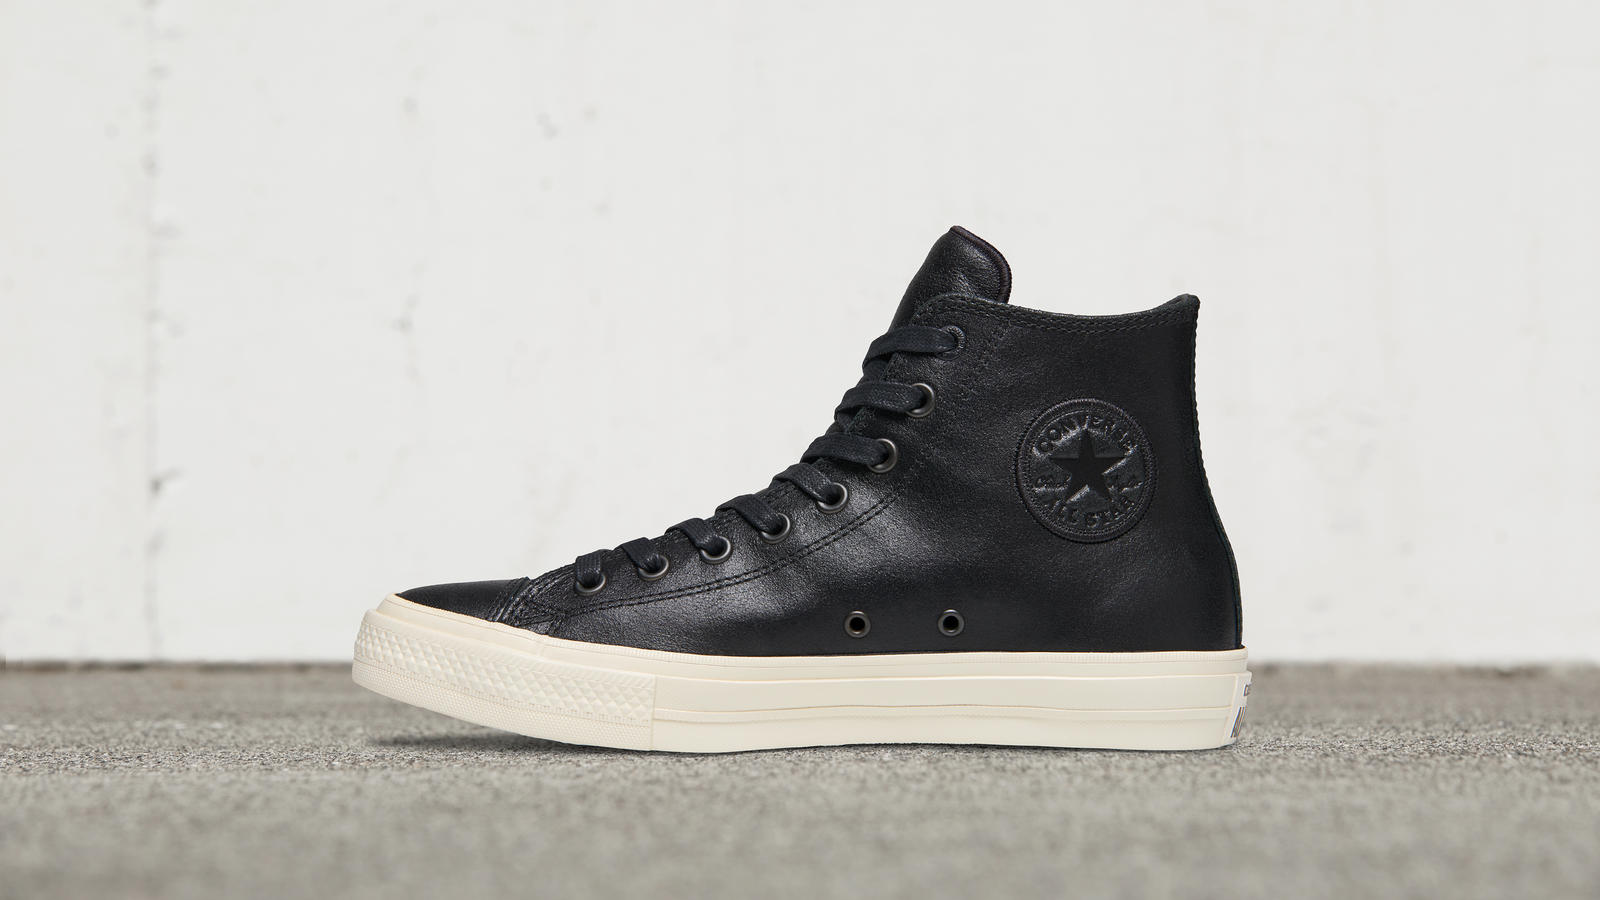 7035b7aa52c0 CONVERSE X JOHN VARVATOS CHUCK TAYLOR ALL STAR II COATED LEATHER HIGH TOP